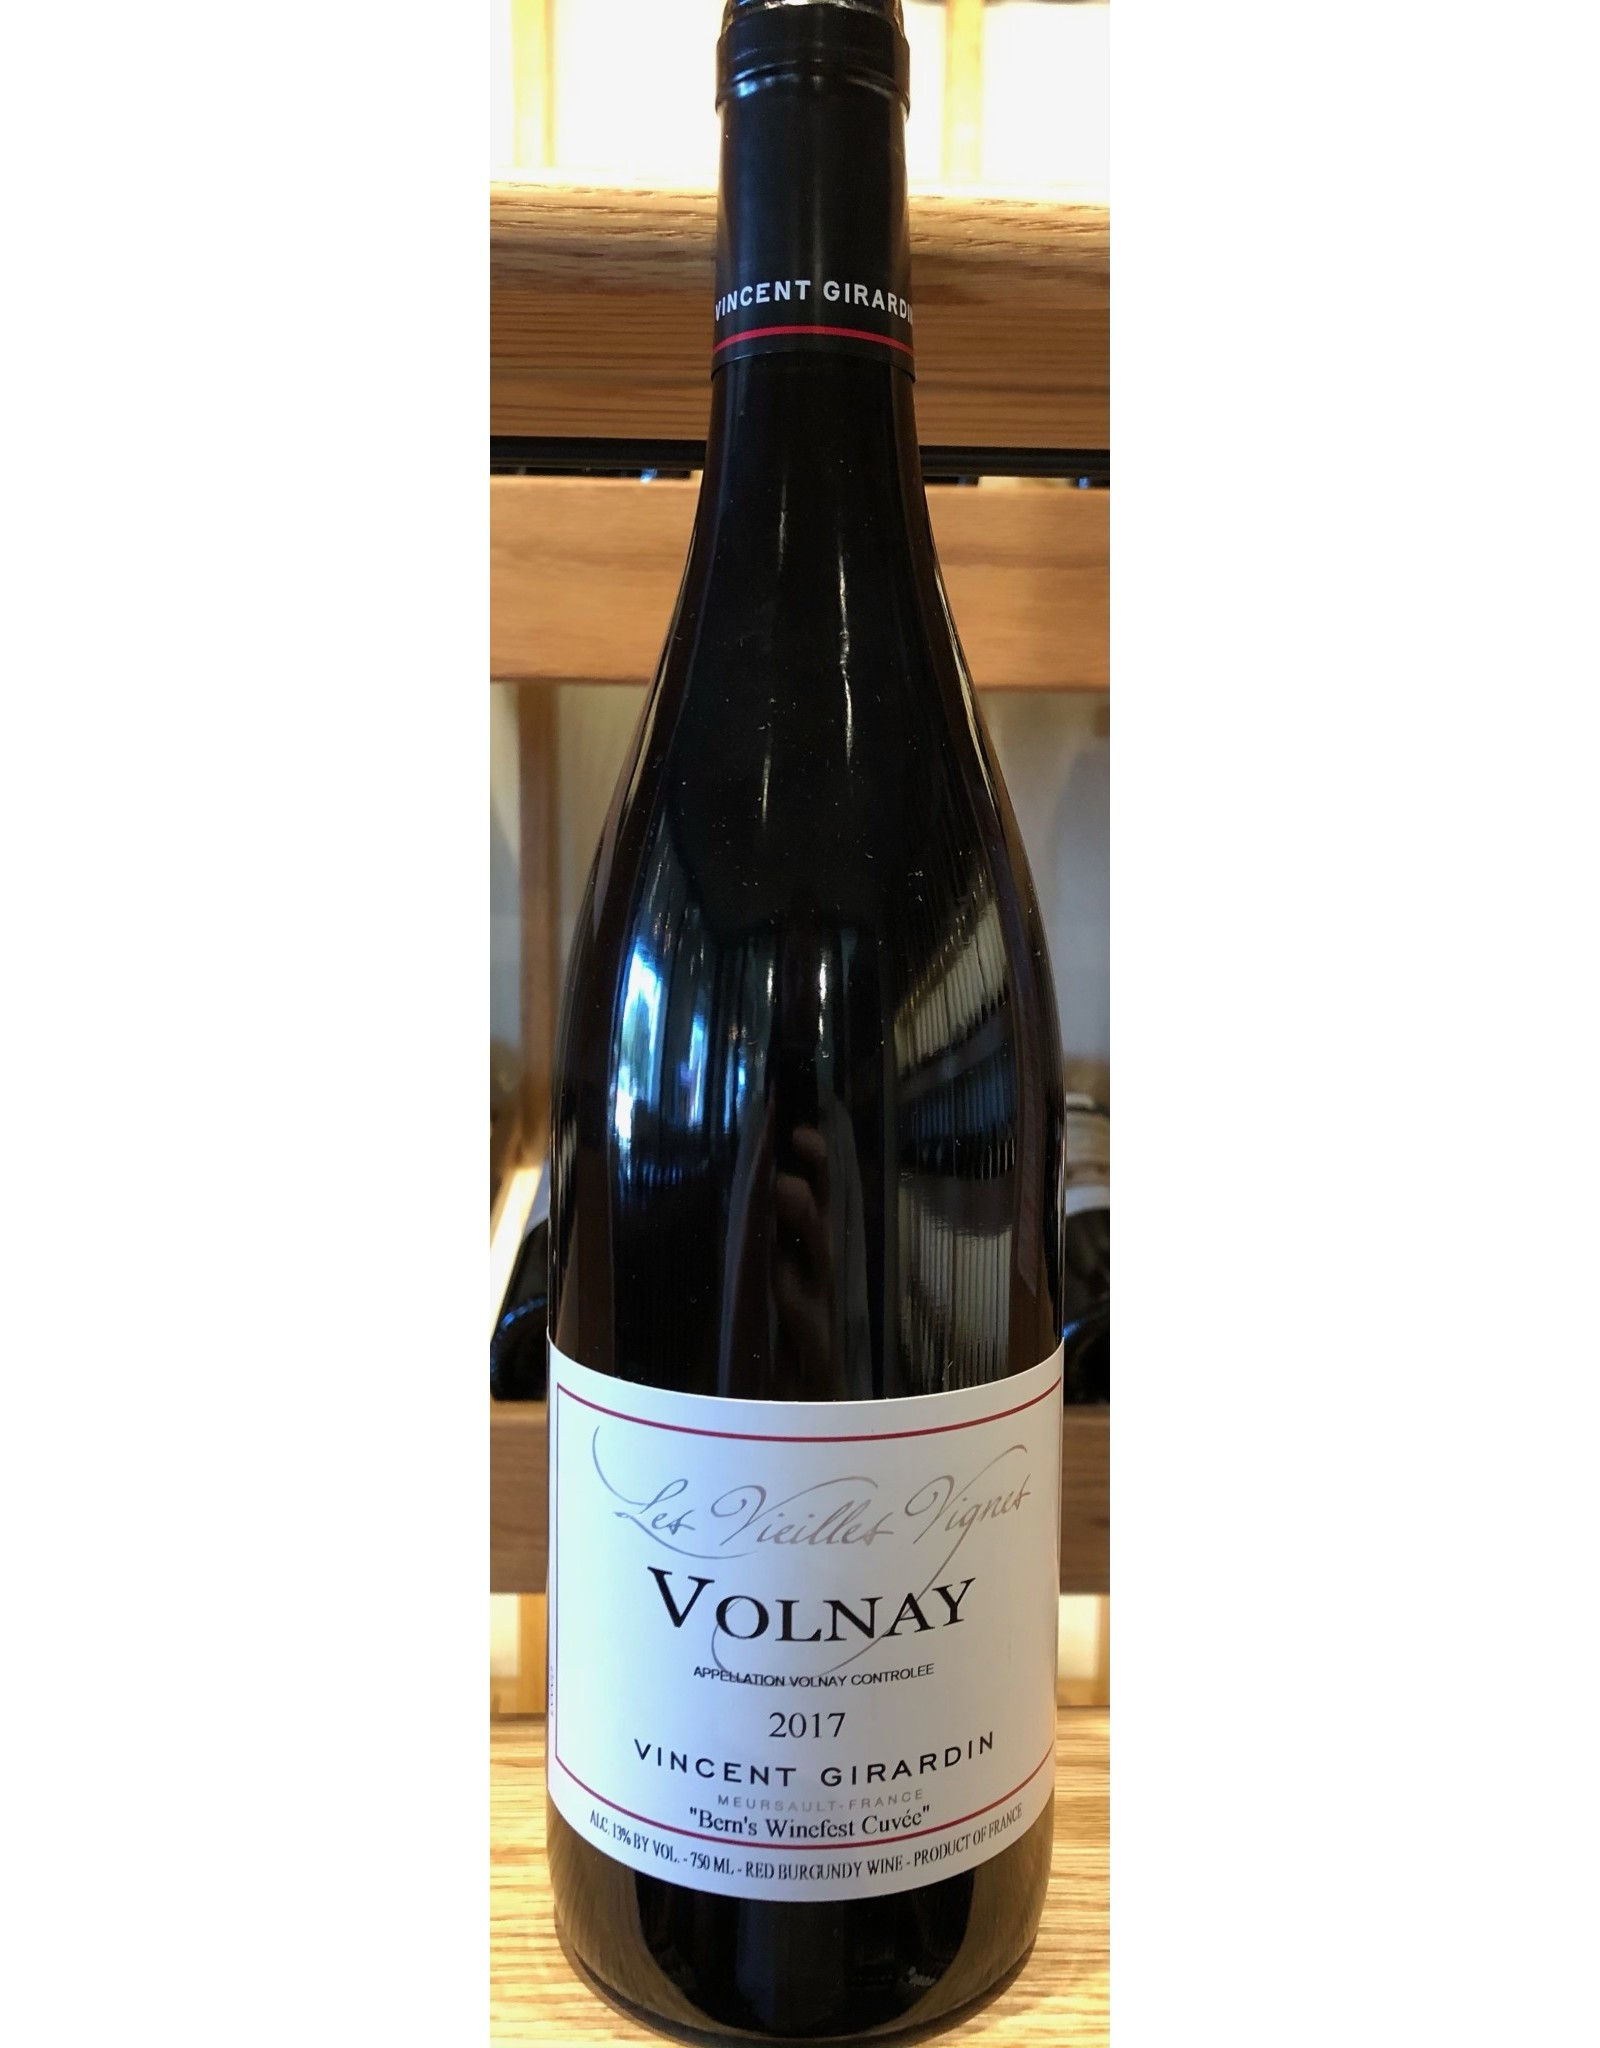 Bern's Select Vincent Girardin Volnay Rouge 2017